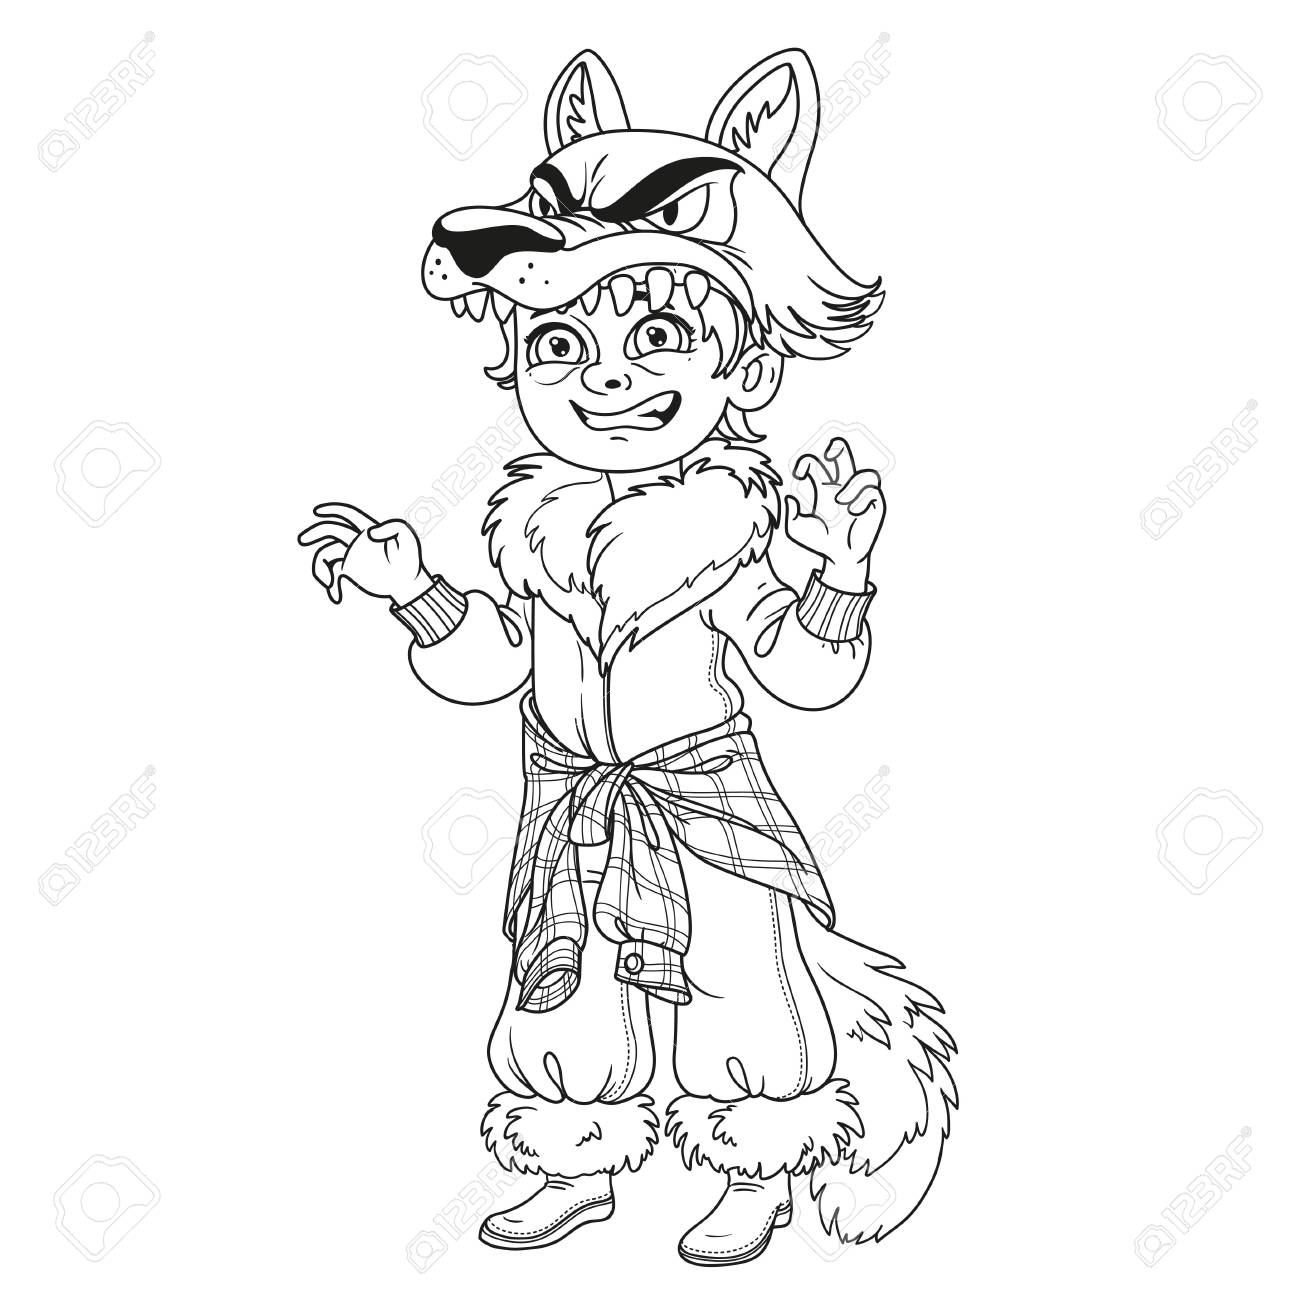 Cute Boy In Werewolf Costume Outlined For Coloring Page Stock Vector